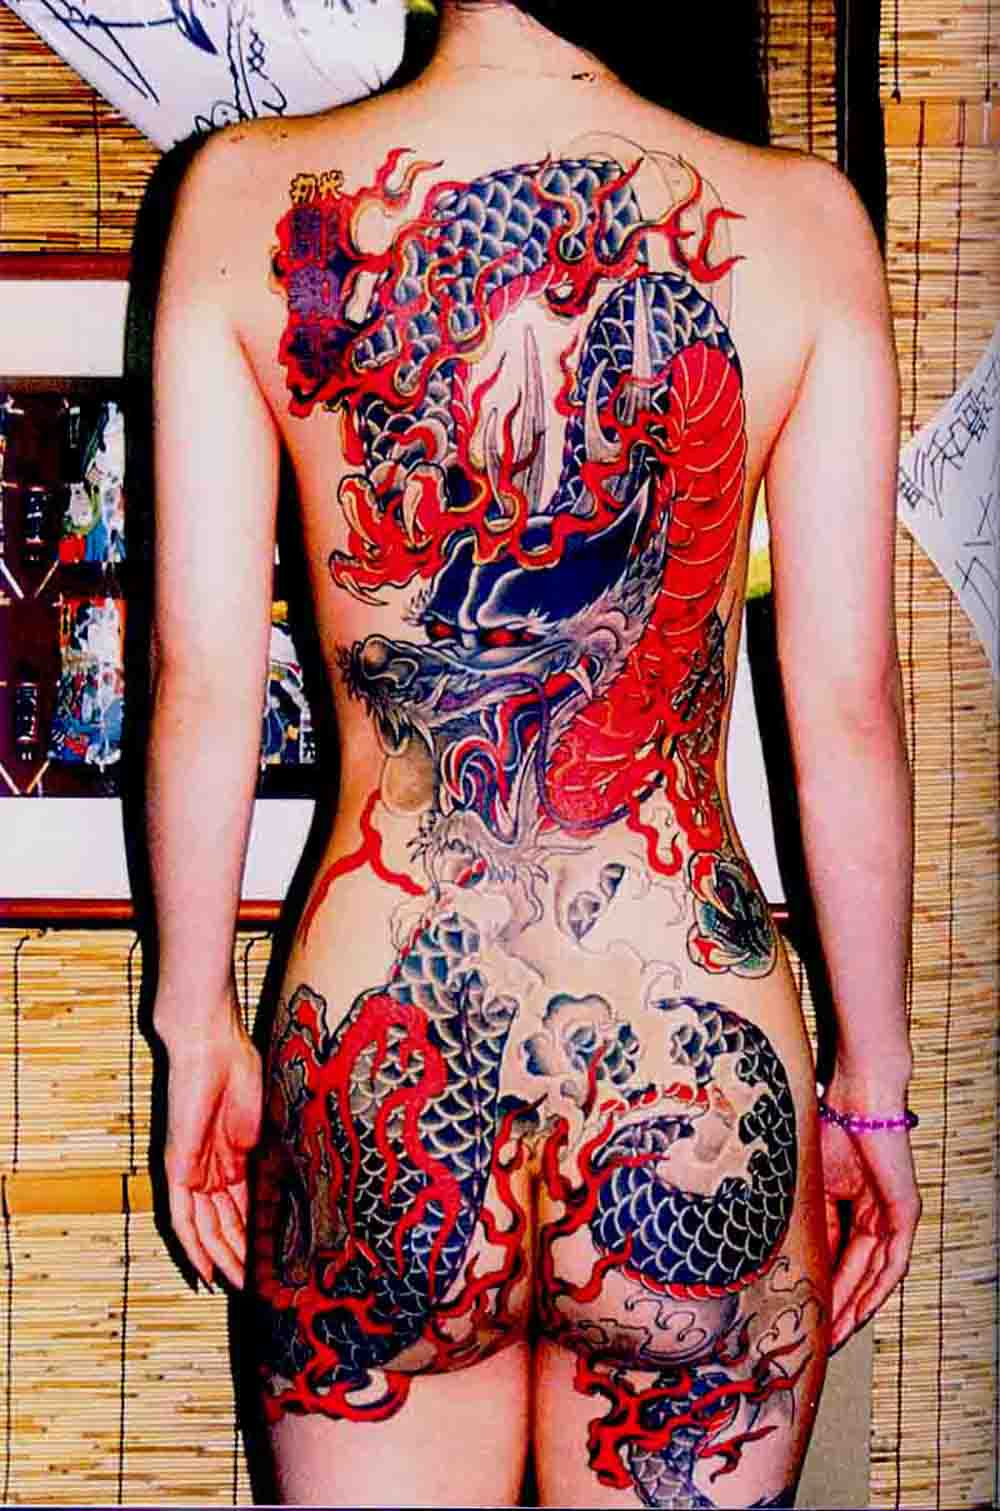 Female Tattoo With Japanese Dragon Tattoo On The Back Body